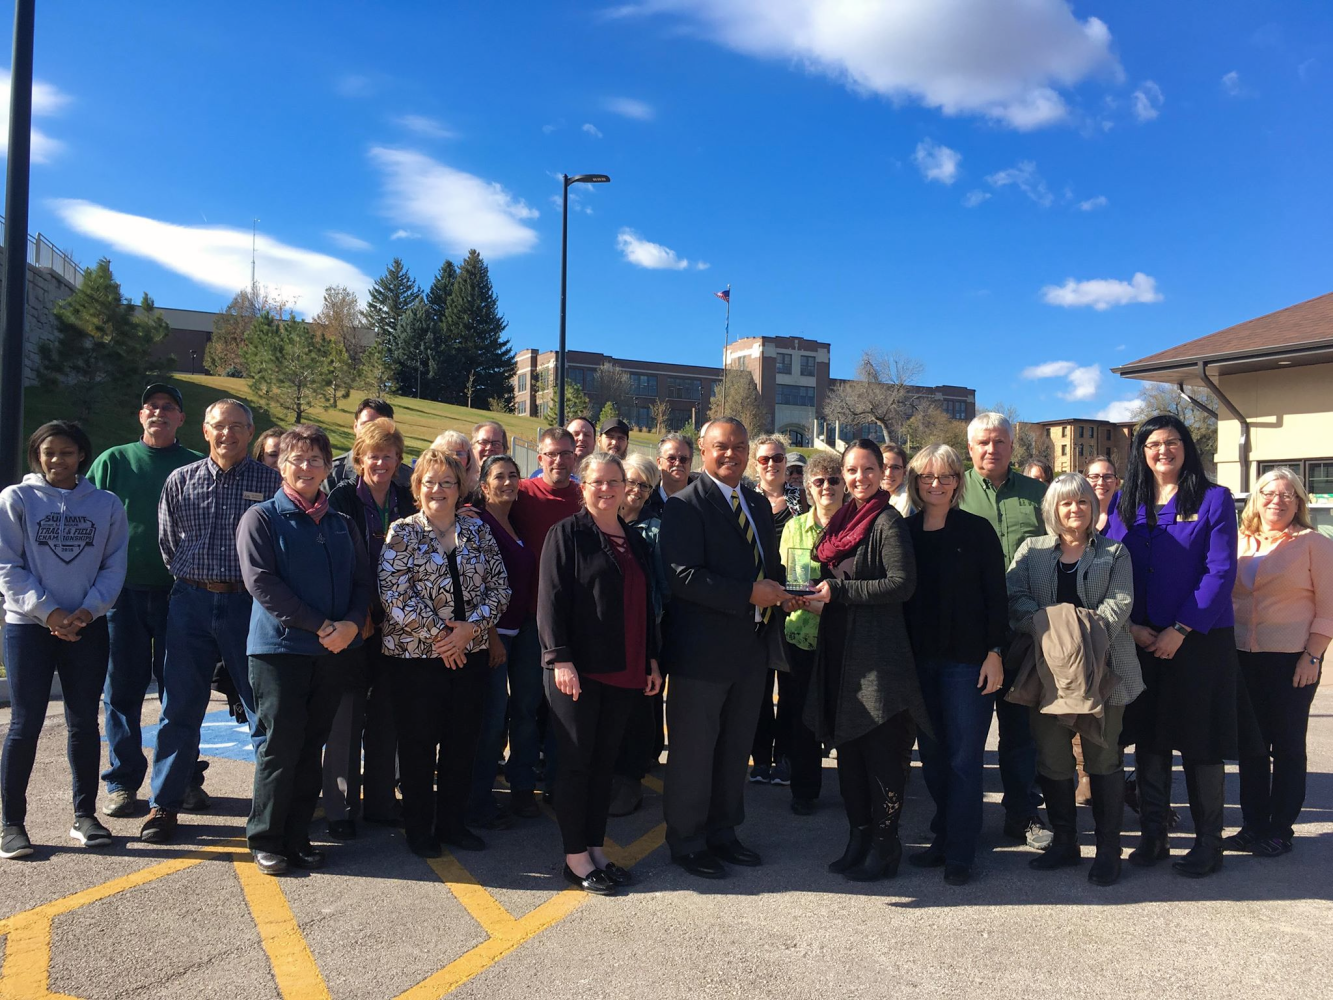 SPEARFISH, S.D. – Black Hills State University is being recognized for beautifying the community of Spearfish. They received the Business Beautification Award from the Spearfish Chamber of Commerce Tuesday for recent additions to the campus. The college has revamped walkways and green spaces on ca...